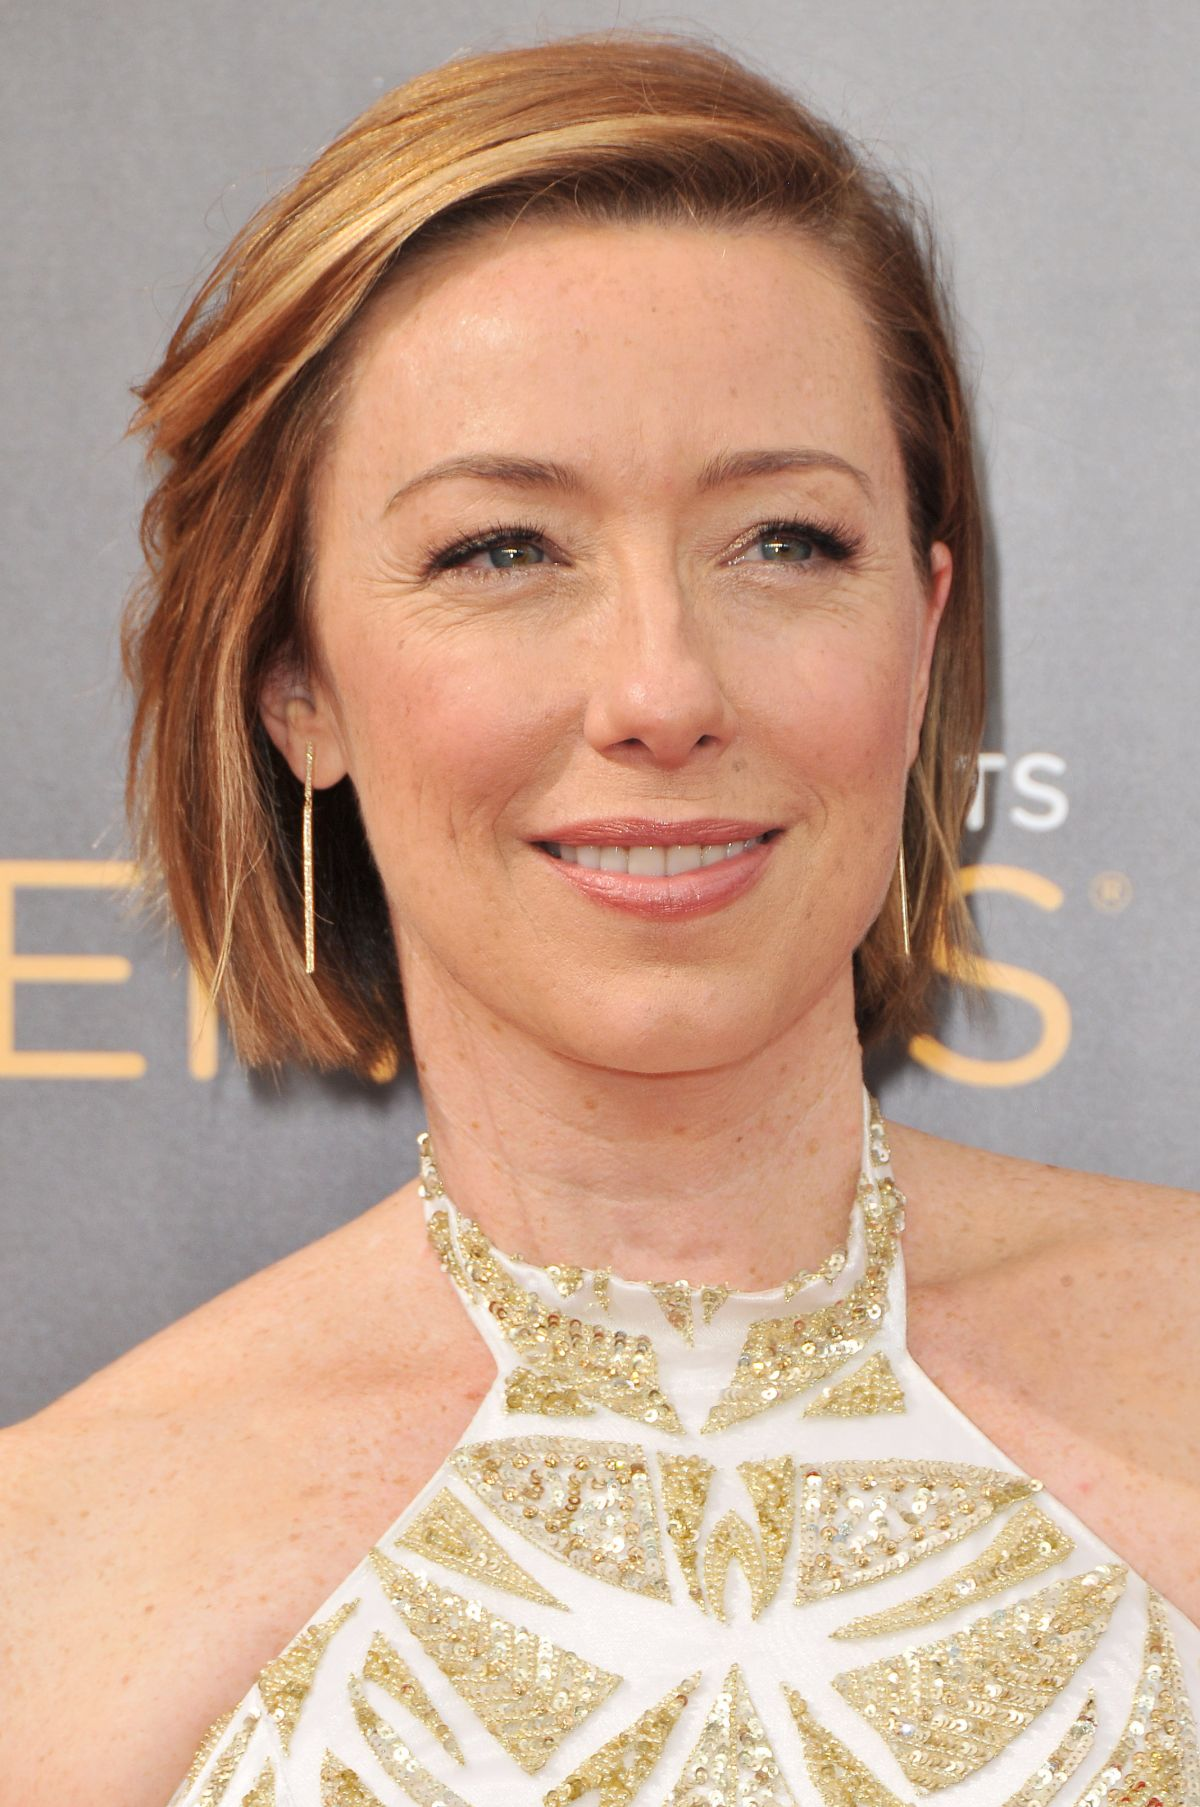 MOLLY PARKER at Creative Arts Emmy Awards in Los Angeles 09/10/2016